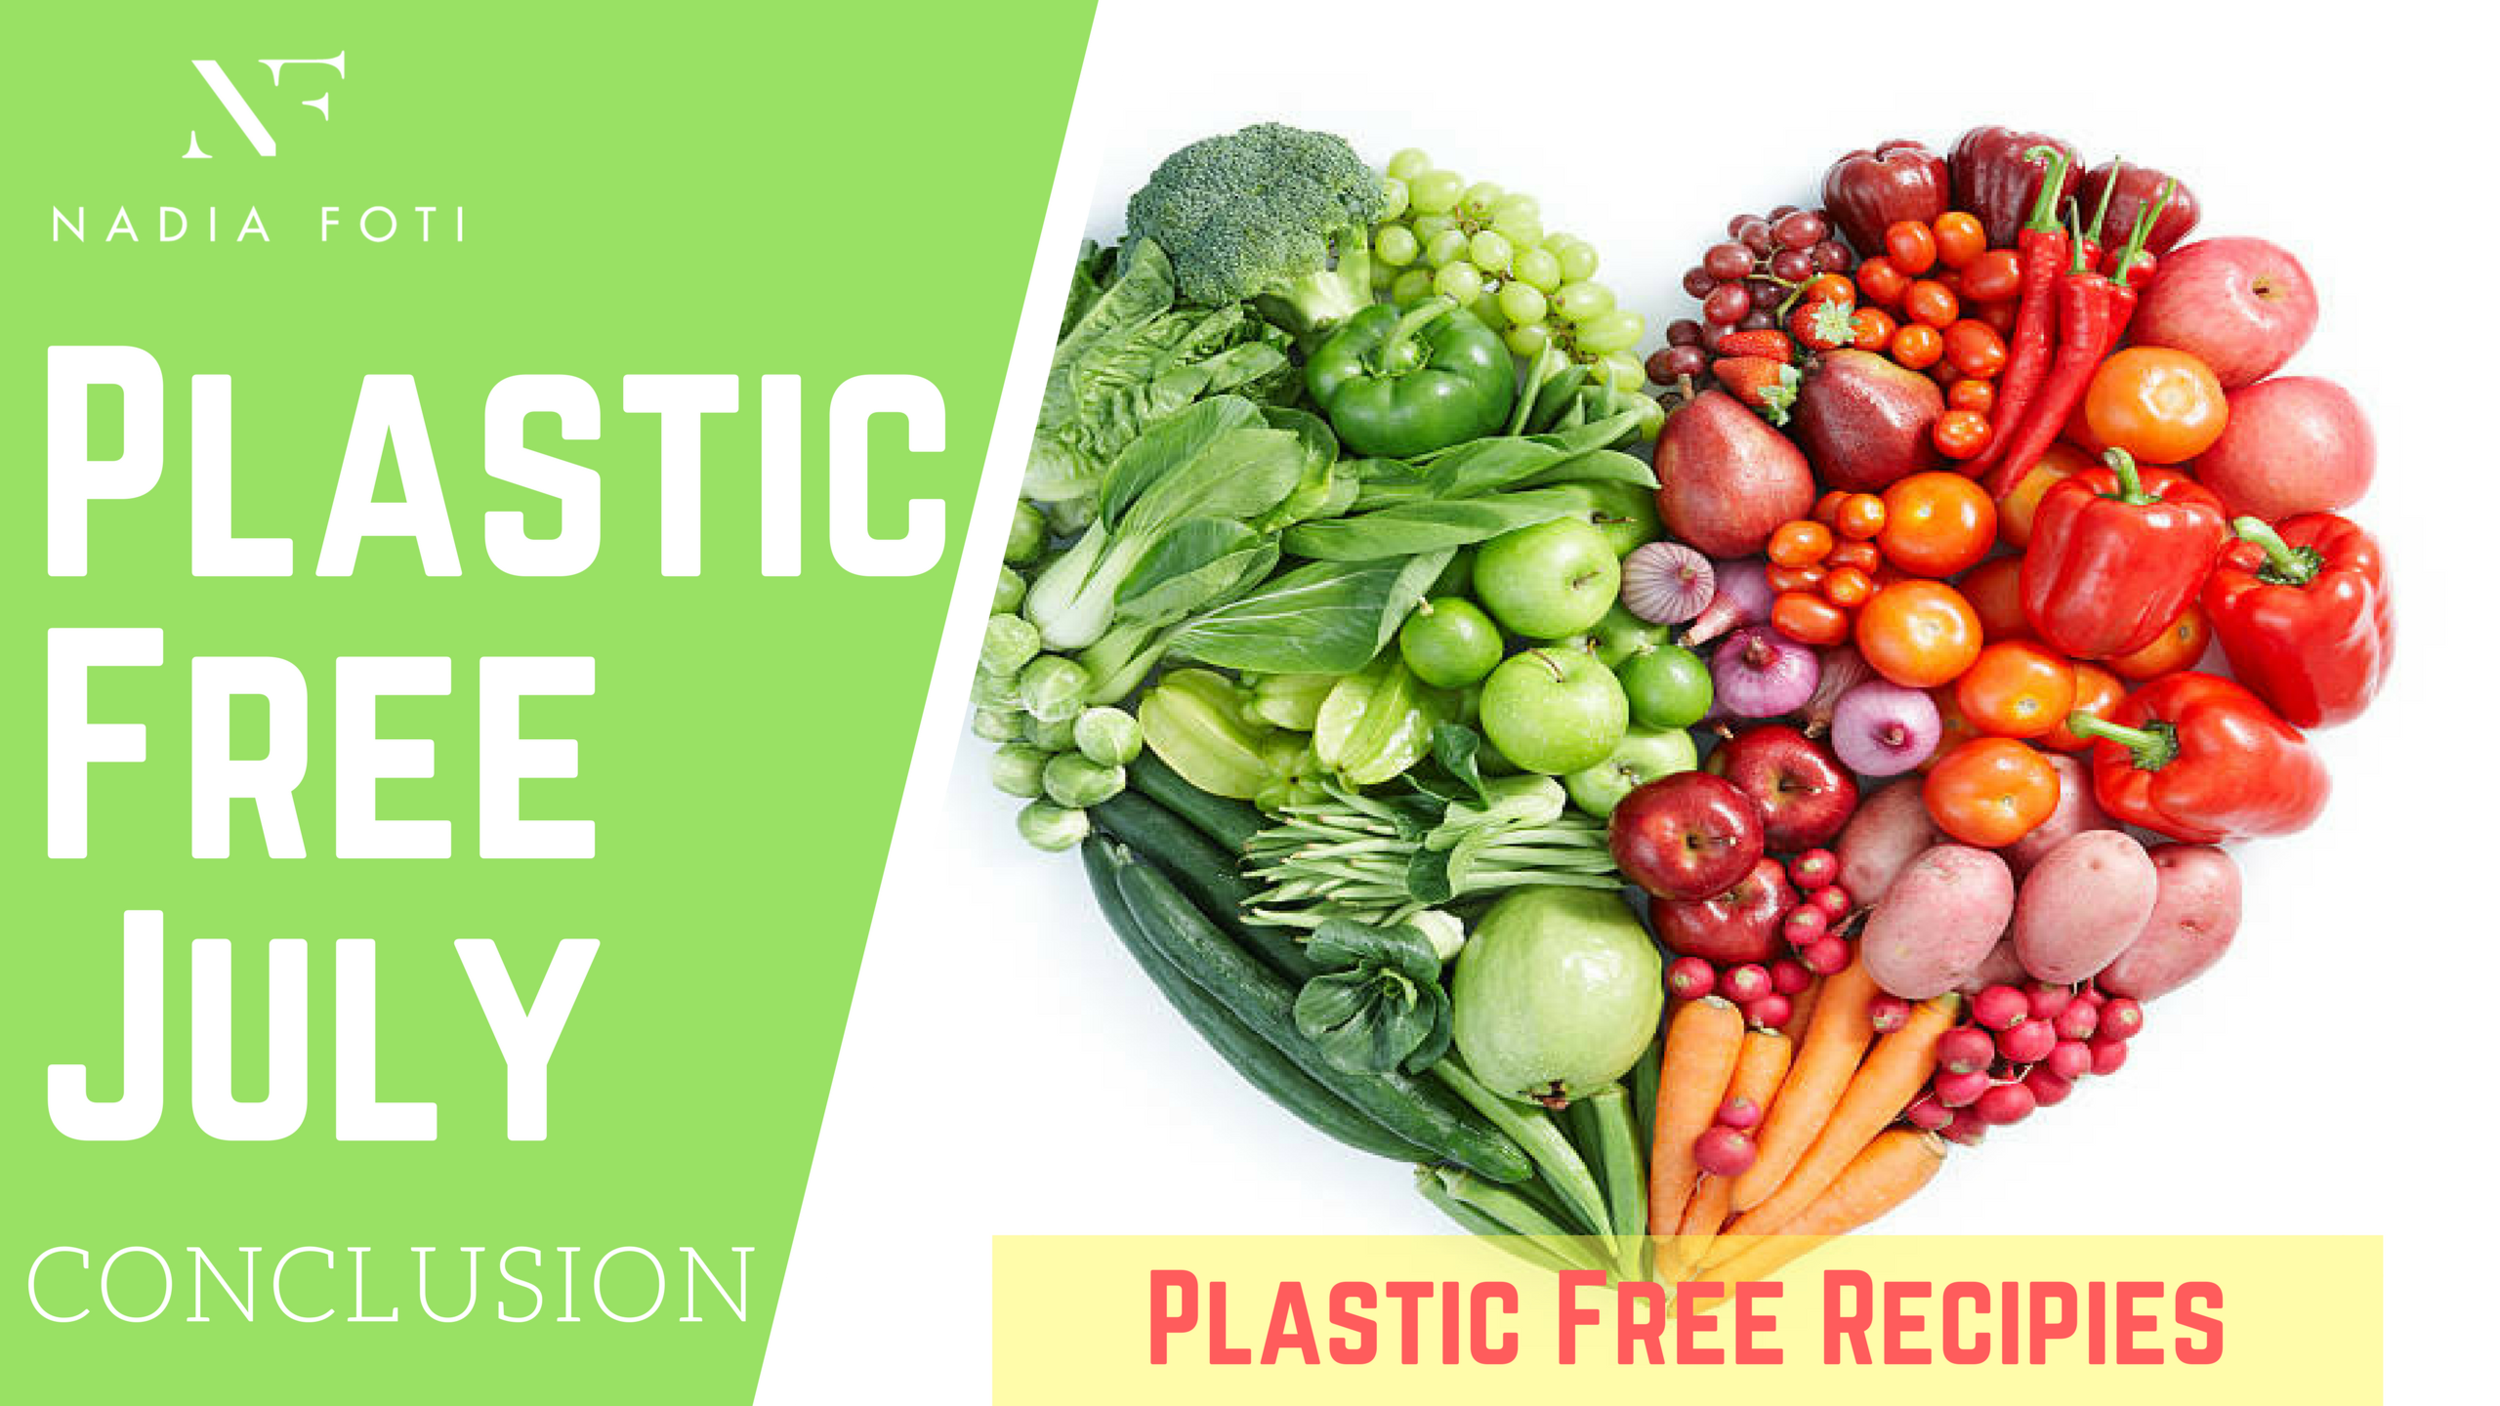 Next Week... - As Plastic Free July comes to an end this doesn't mean we will stop our plastic free mission. Stay tuned for cool plastic free recipes that you will love!Until next time xx- NF